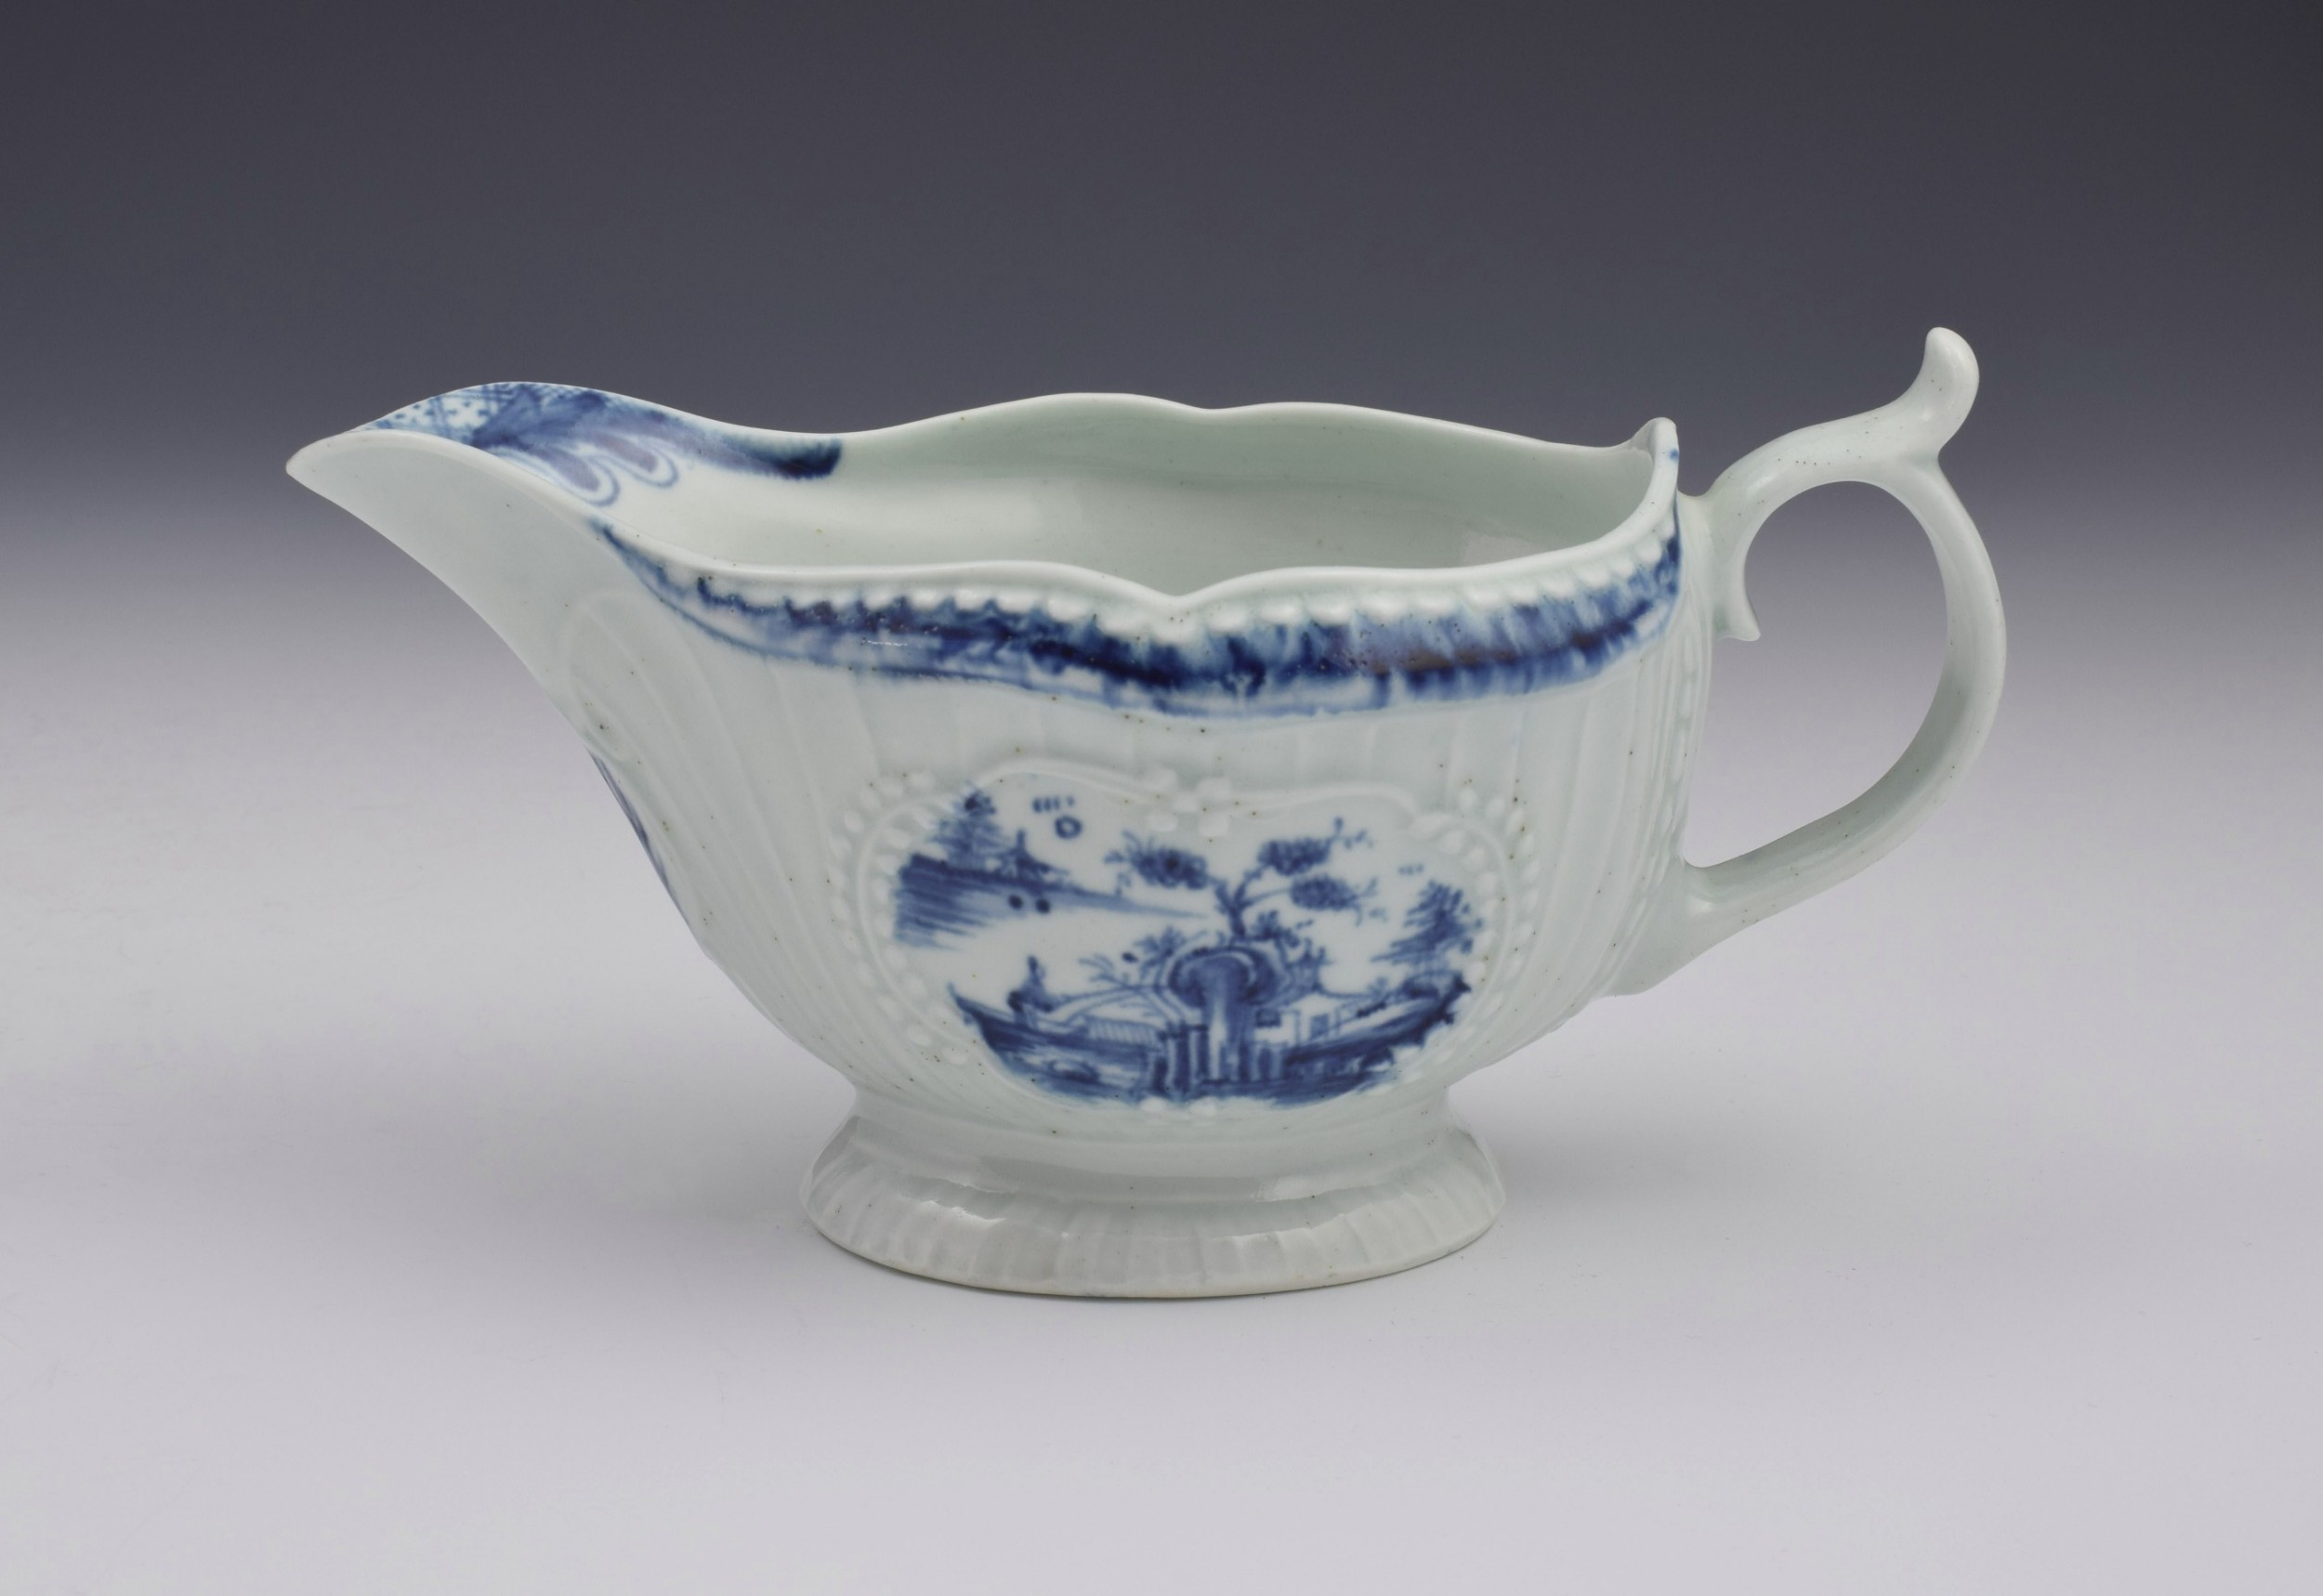 first period worcester sauceboat the fisherman billboard island pattern sauce boat